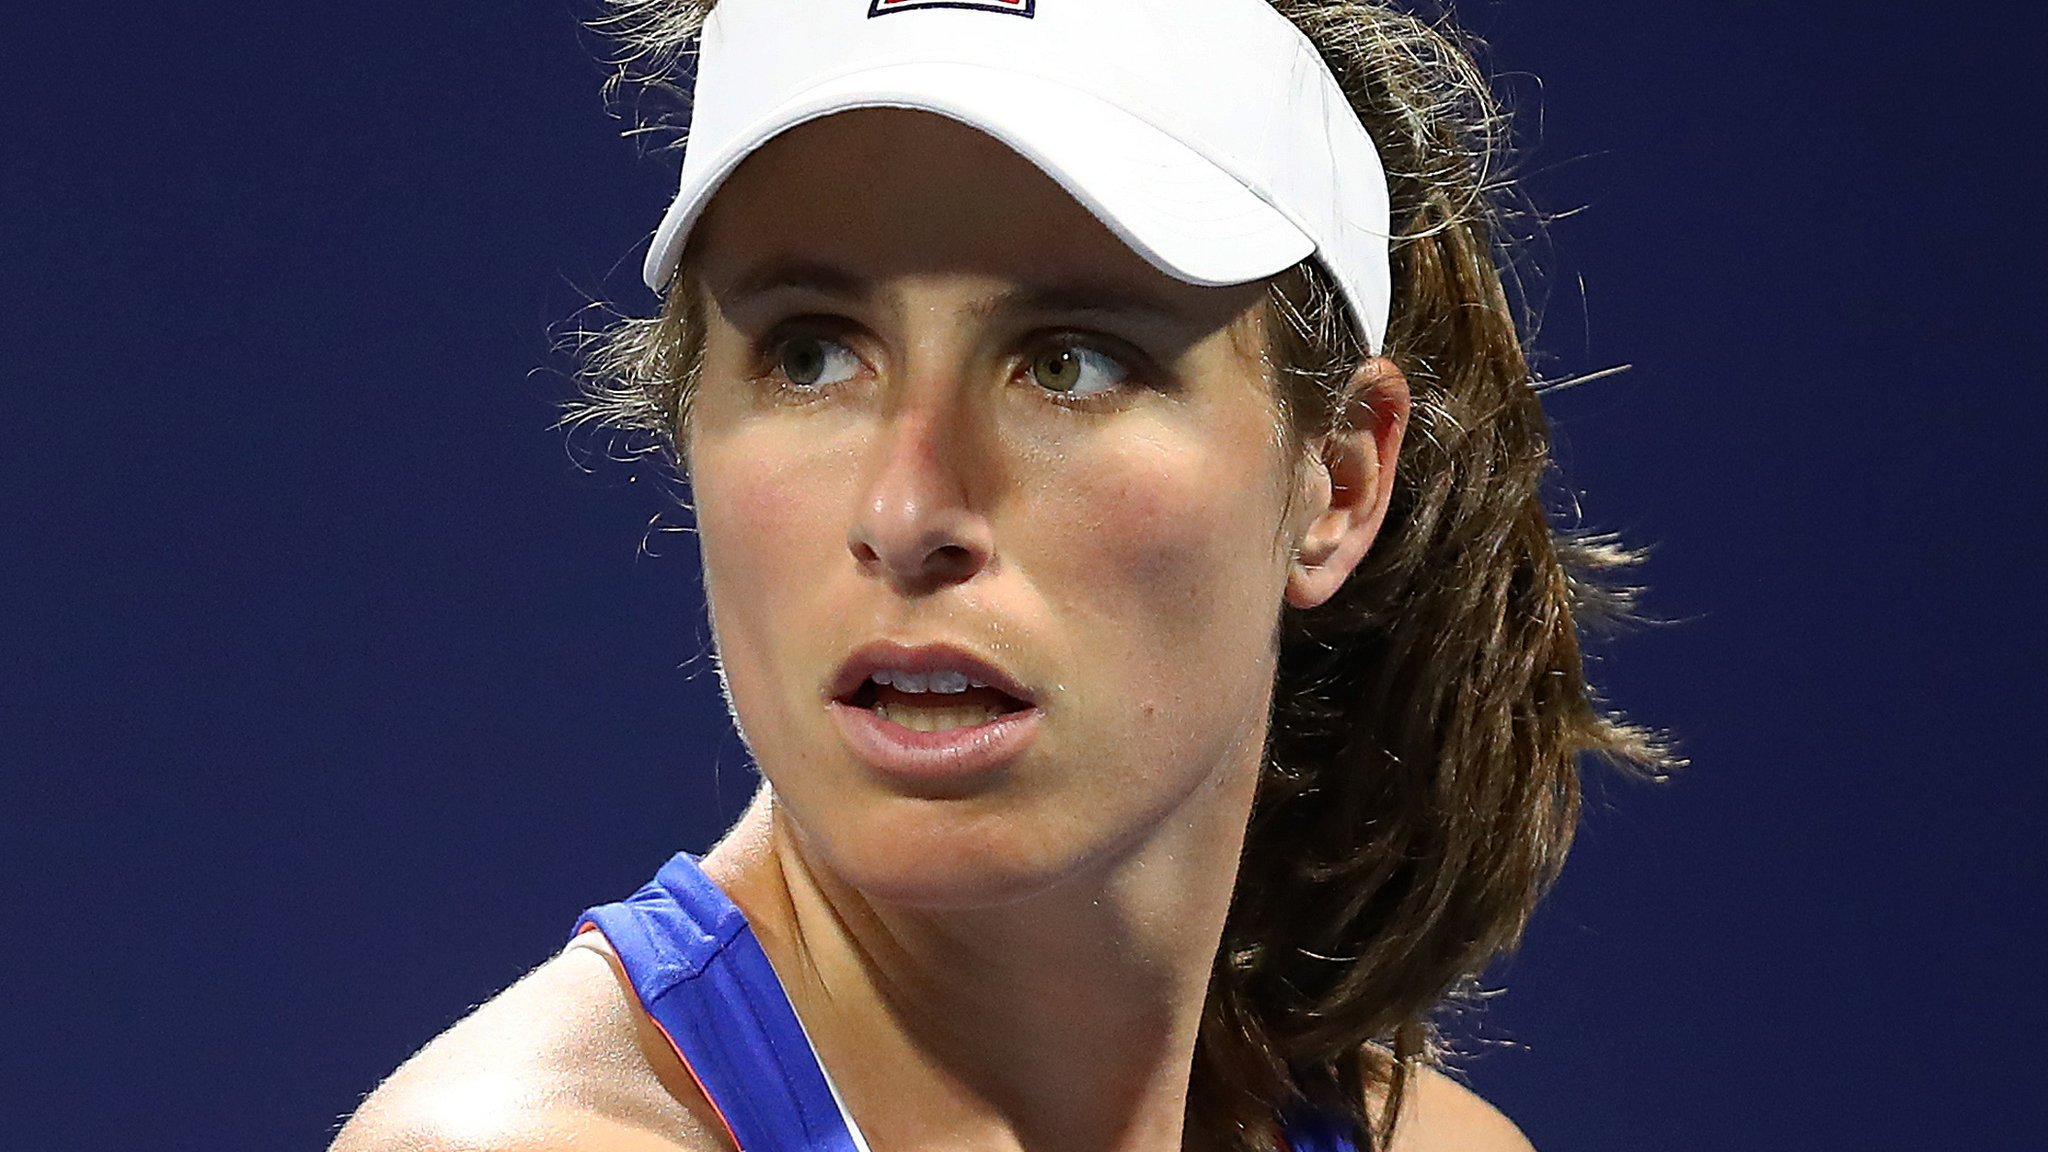 Konta loses last 10 games as she is beaten at Miami Open